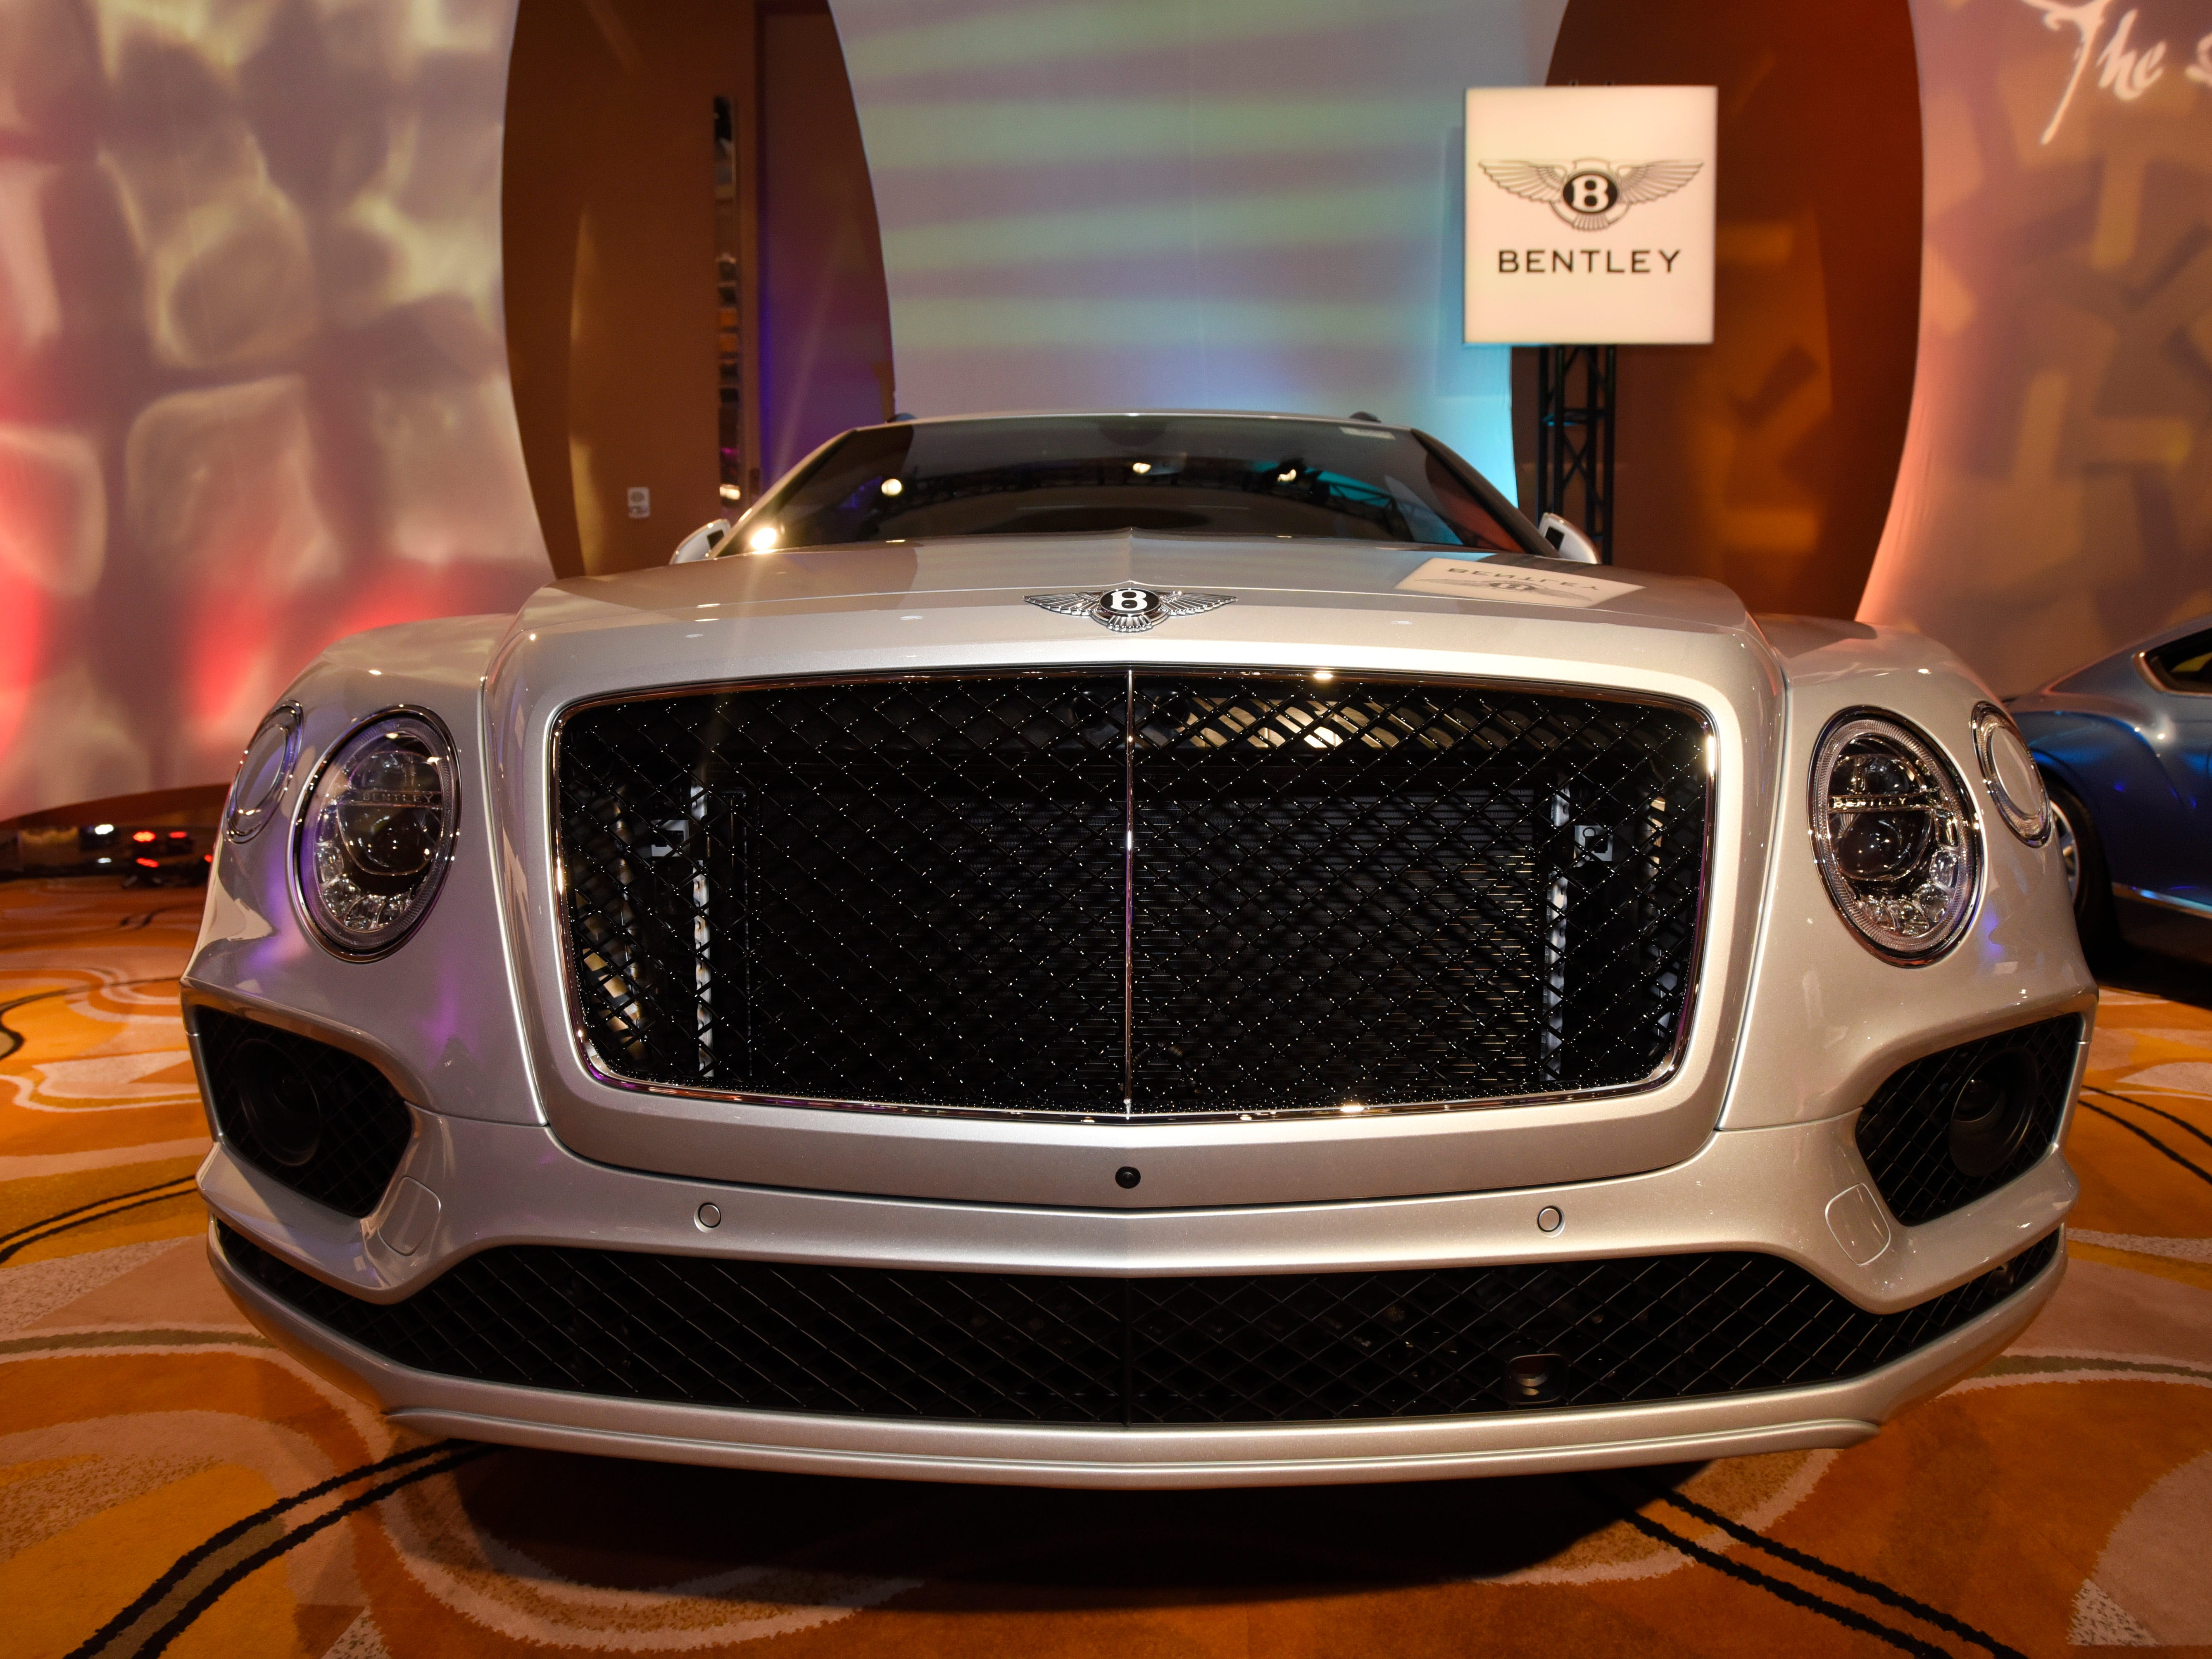 The big grille of a Bentley seems to greet visitors to The Gallery.